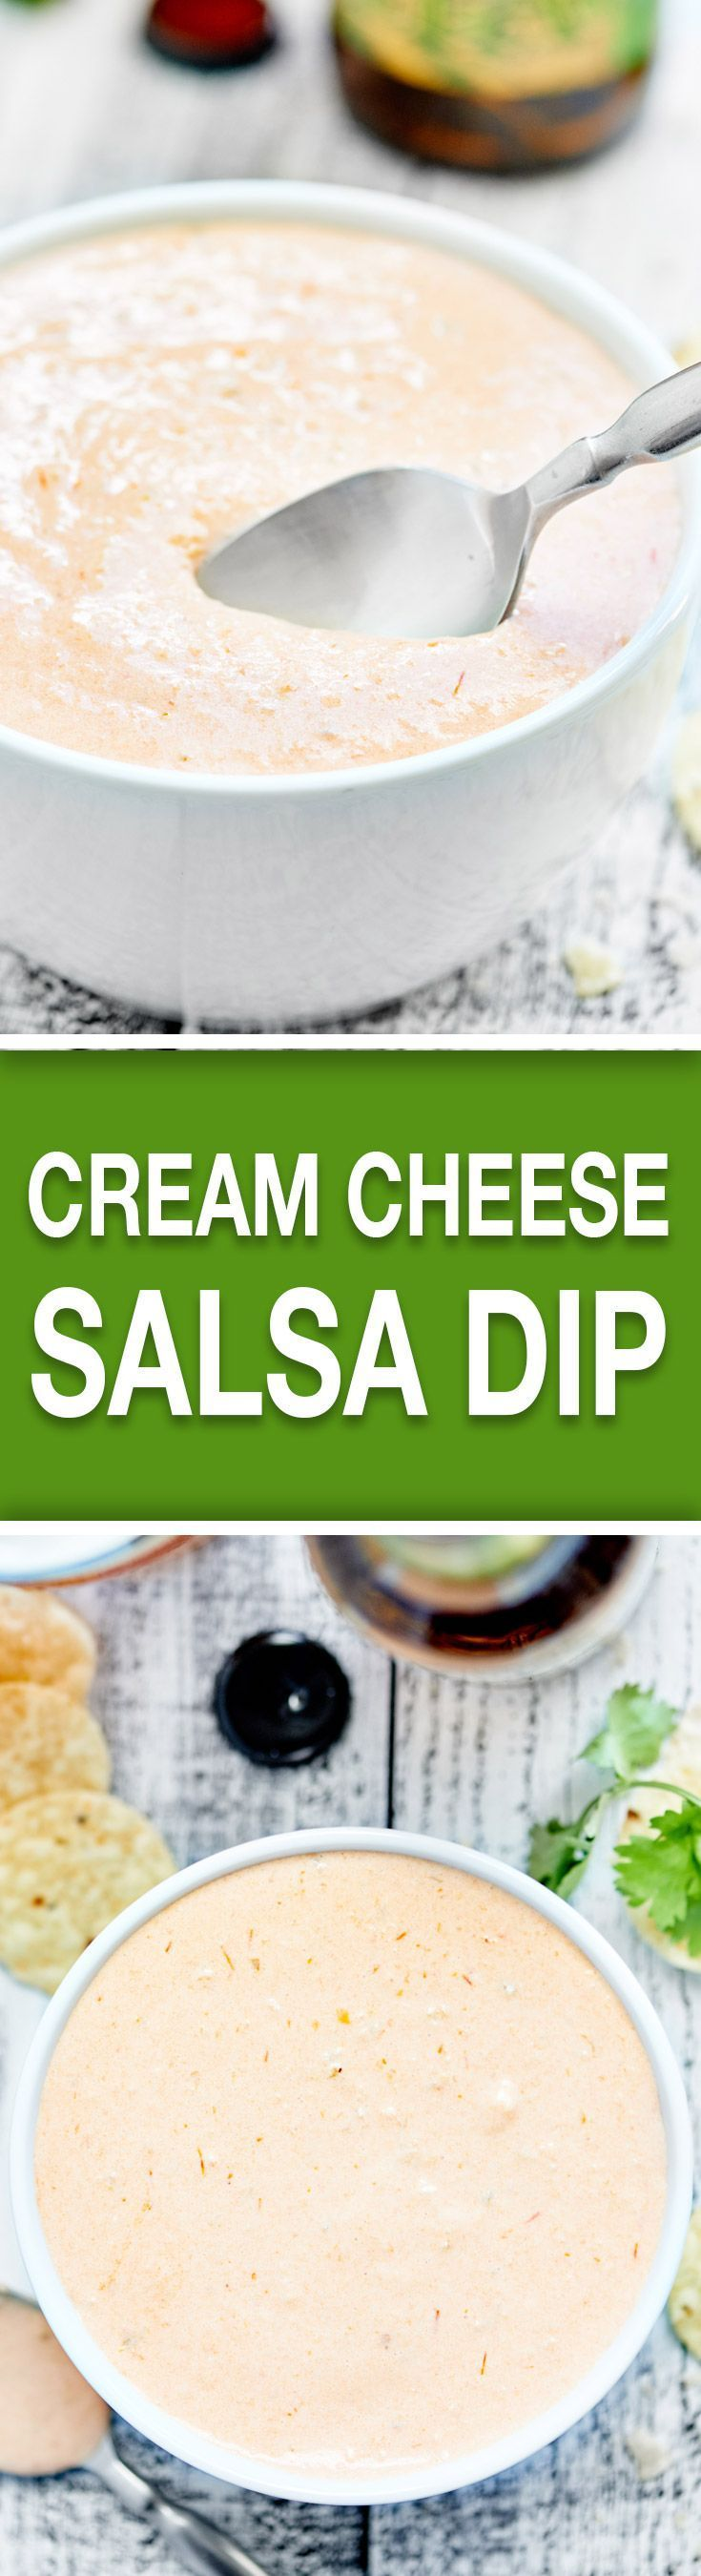 This Cream Cheese Salsa Dip requires two ingredients and 30 seconds of prep! It's addicting, it's creamy, it's so easy, and the spice level is up to you! http://showmetheyummy.com #creamcheese #salsa #snack